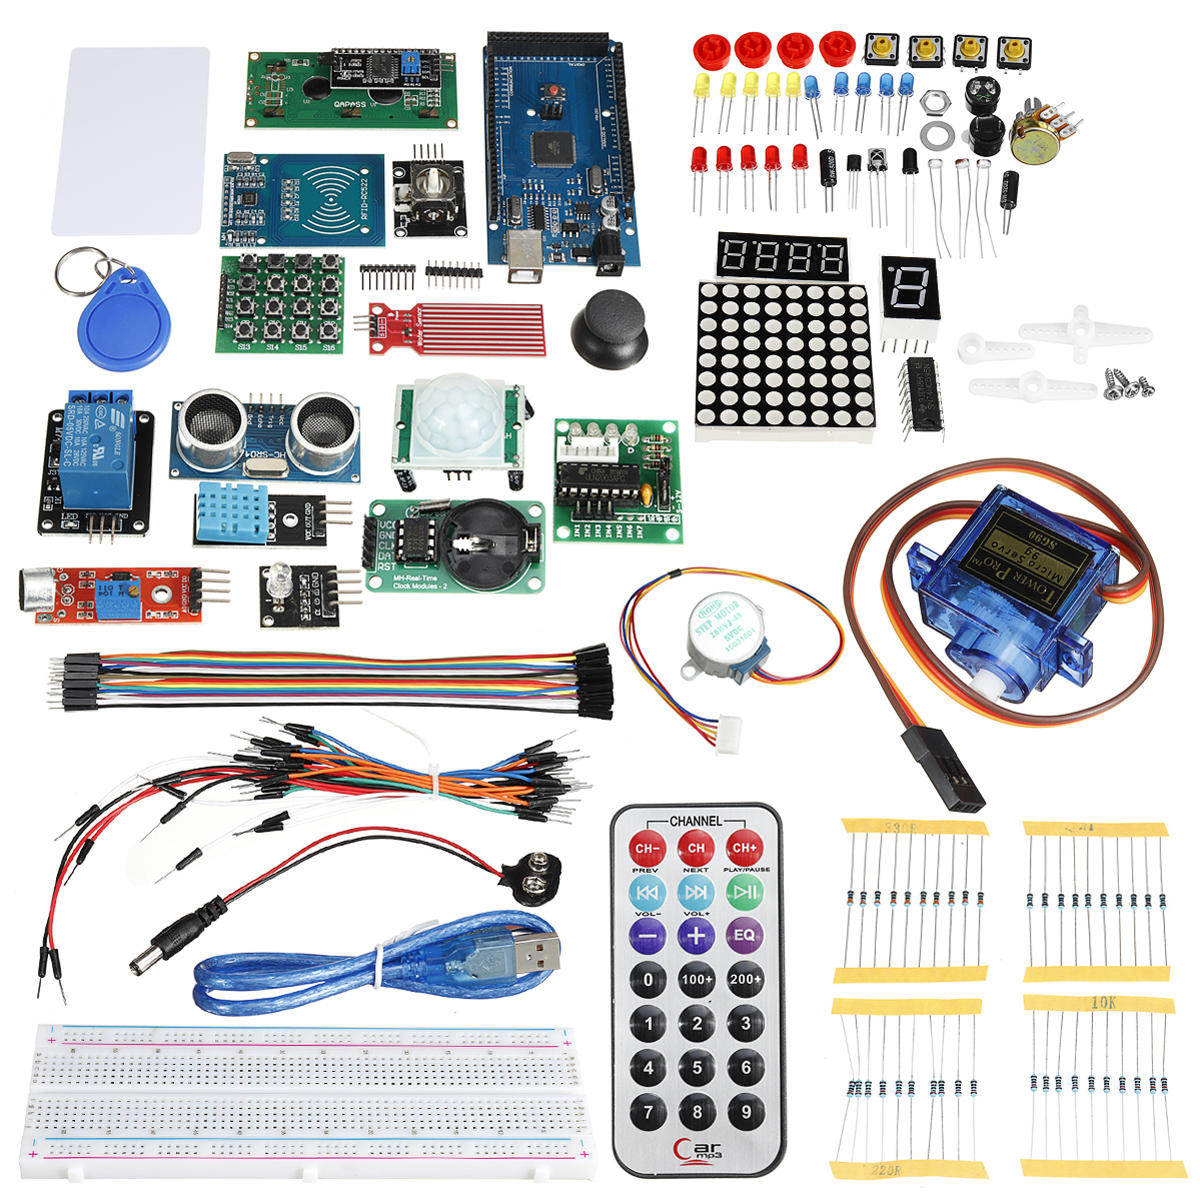 Wiring Is Different For Arduino Uno This Wiring Is For Arduino Mega